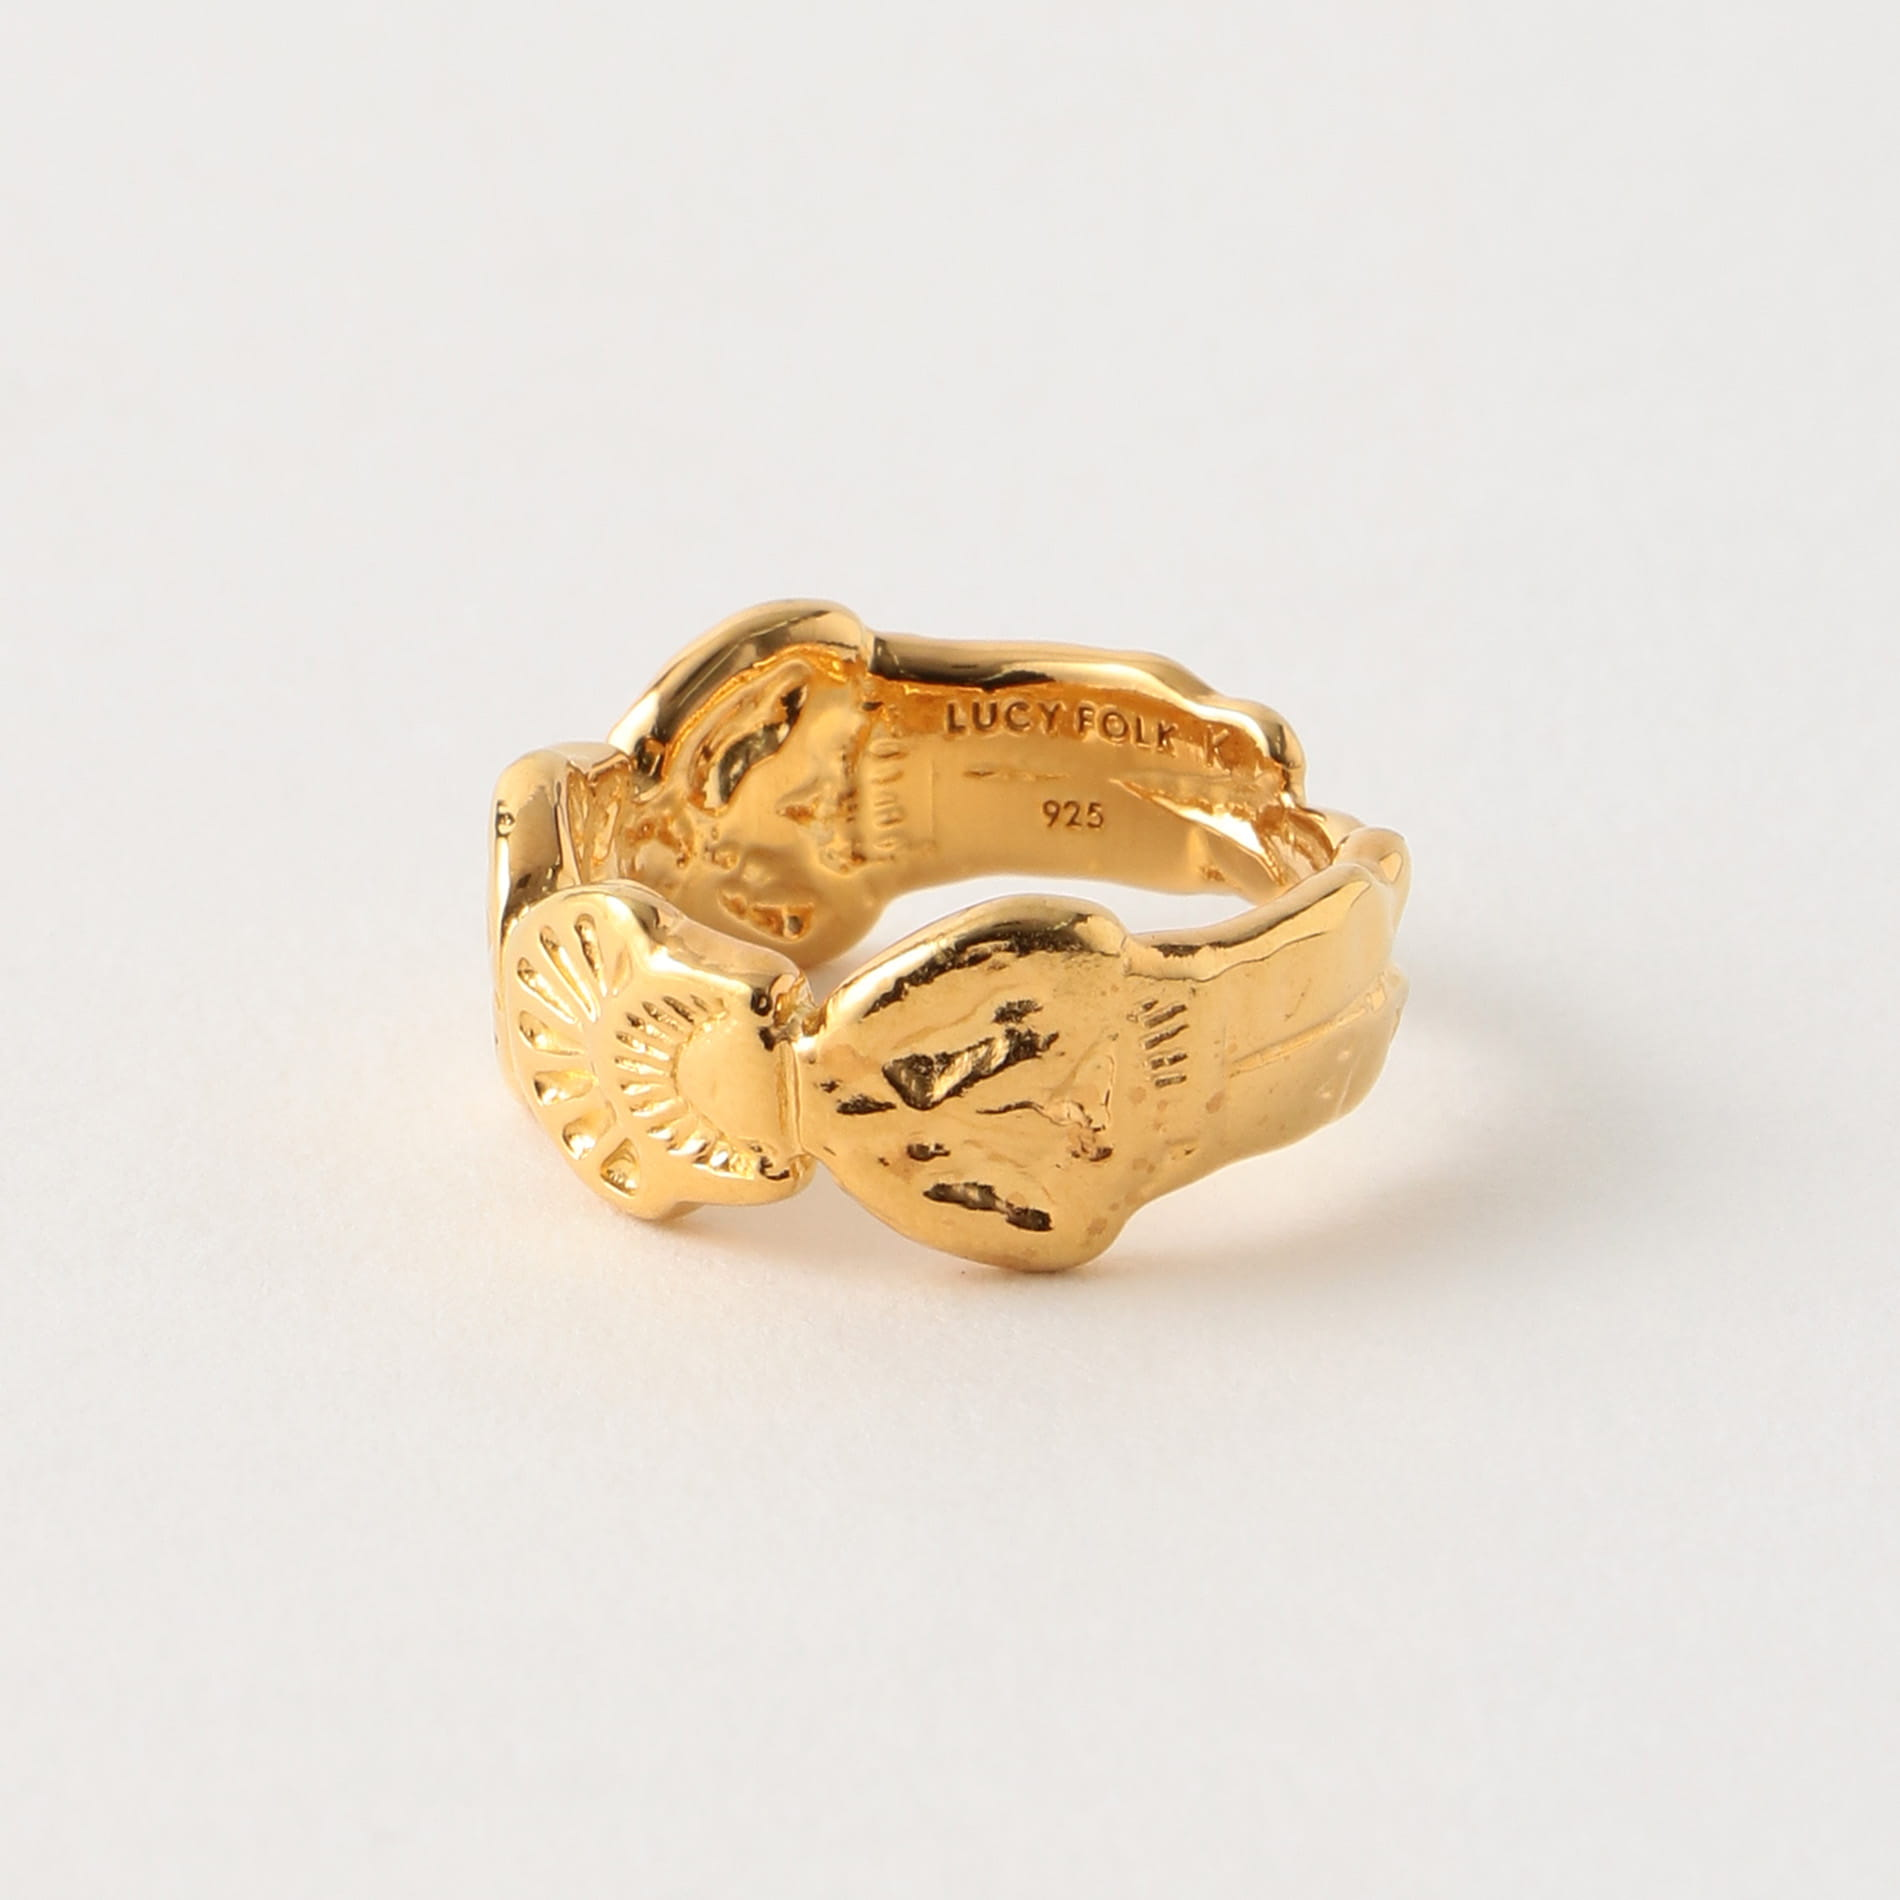 【LUCY FOLK】WOMEN リング Pyramid Of The Sun Sterling Silver, Yellow Gold Plate